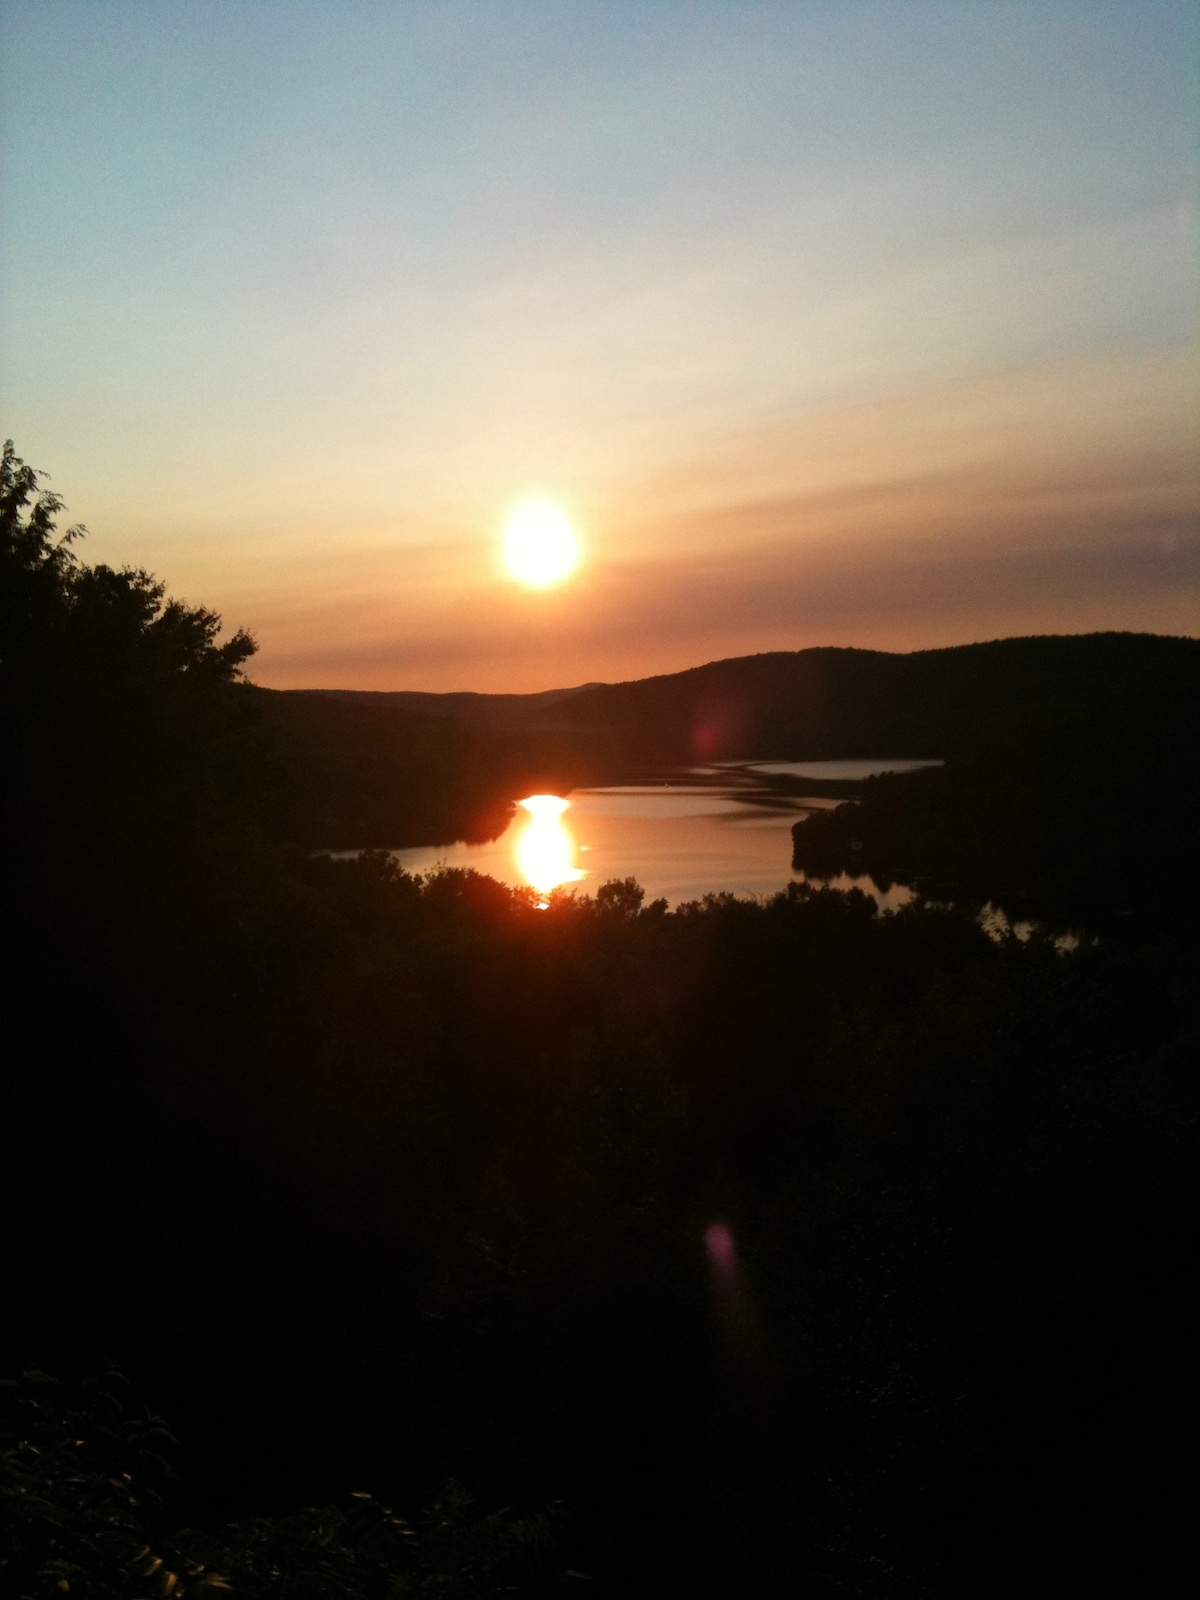 Watching the sun set from our patio after a wonderful day in Tremblant, Quebec